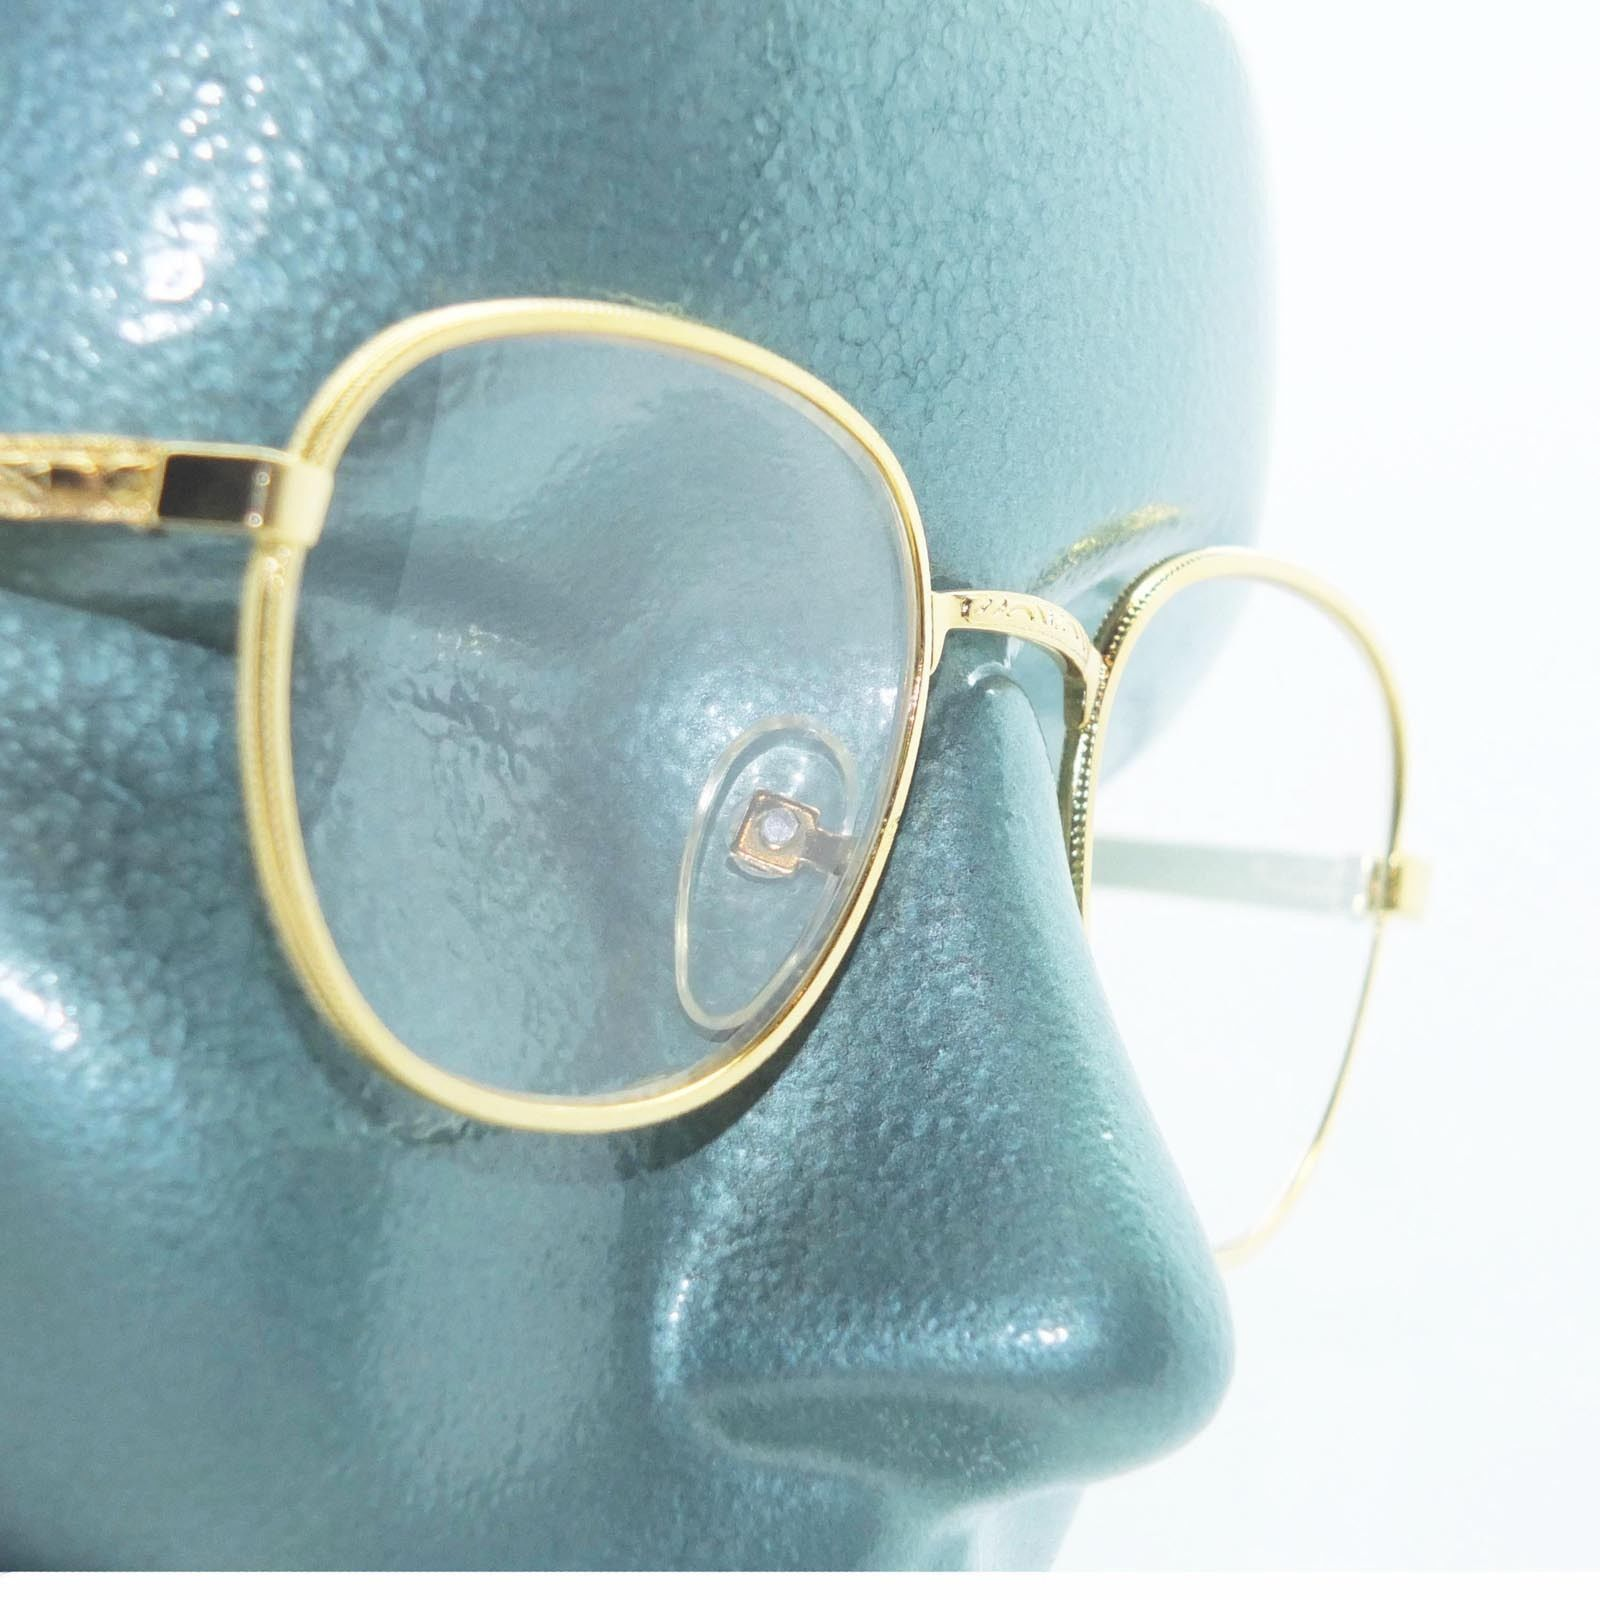 Primary image for Classic Metal Rounded Frame Reading Glasses Gold Wire +3.50 Lens Strength